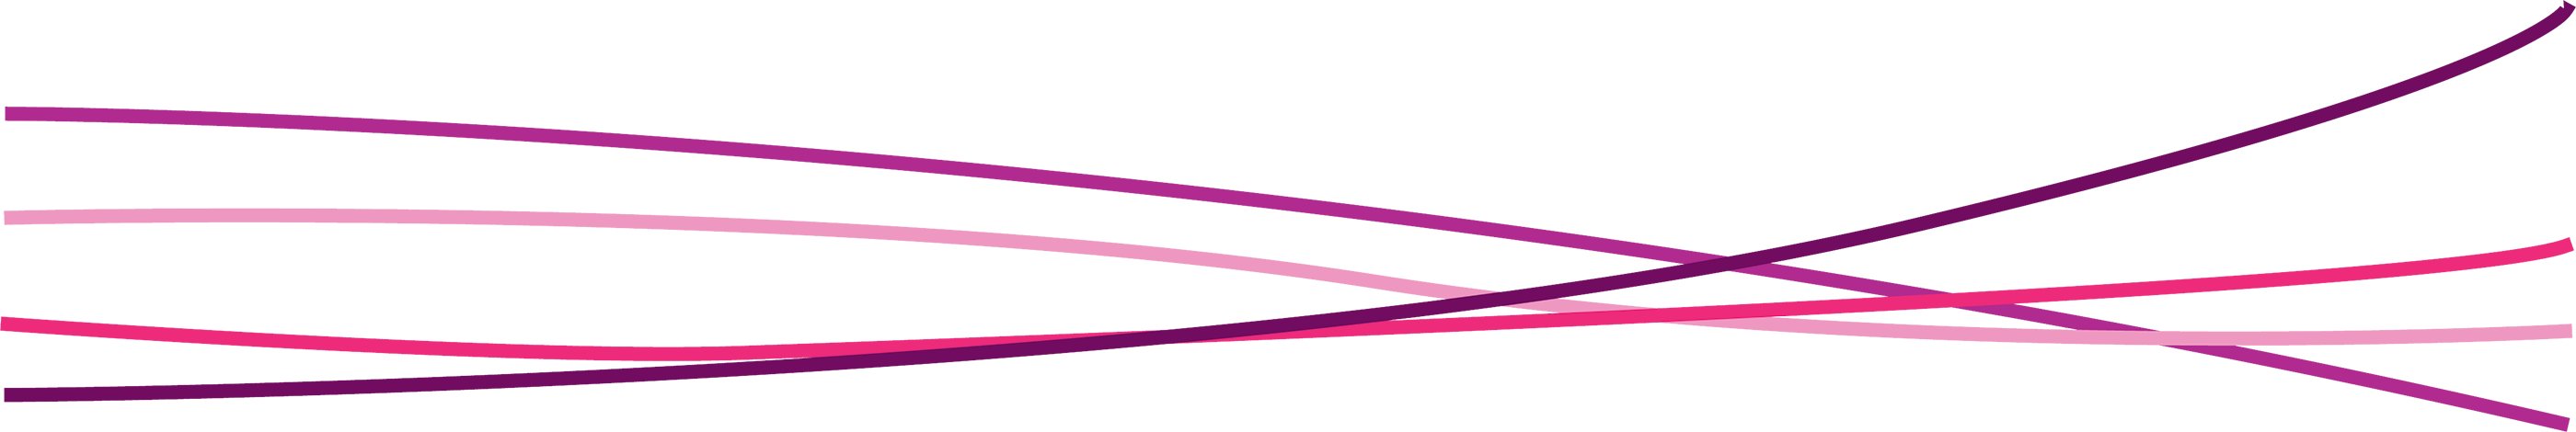 Pink Line Png (105+ images in Collection) Page 3.